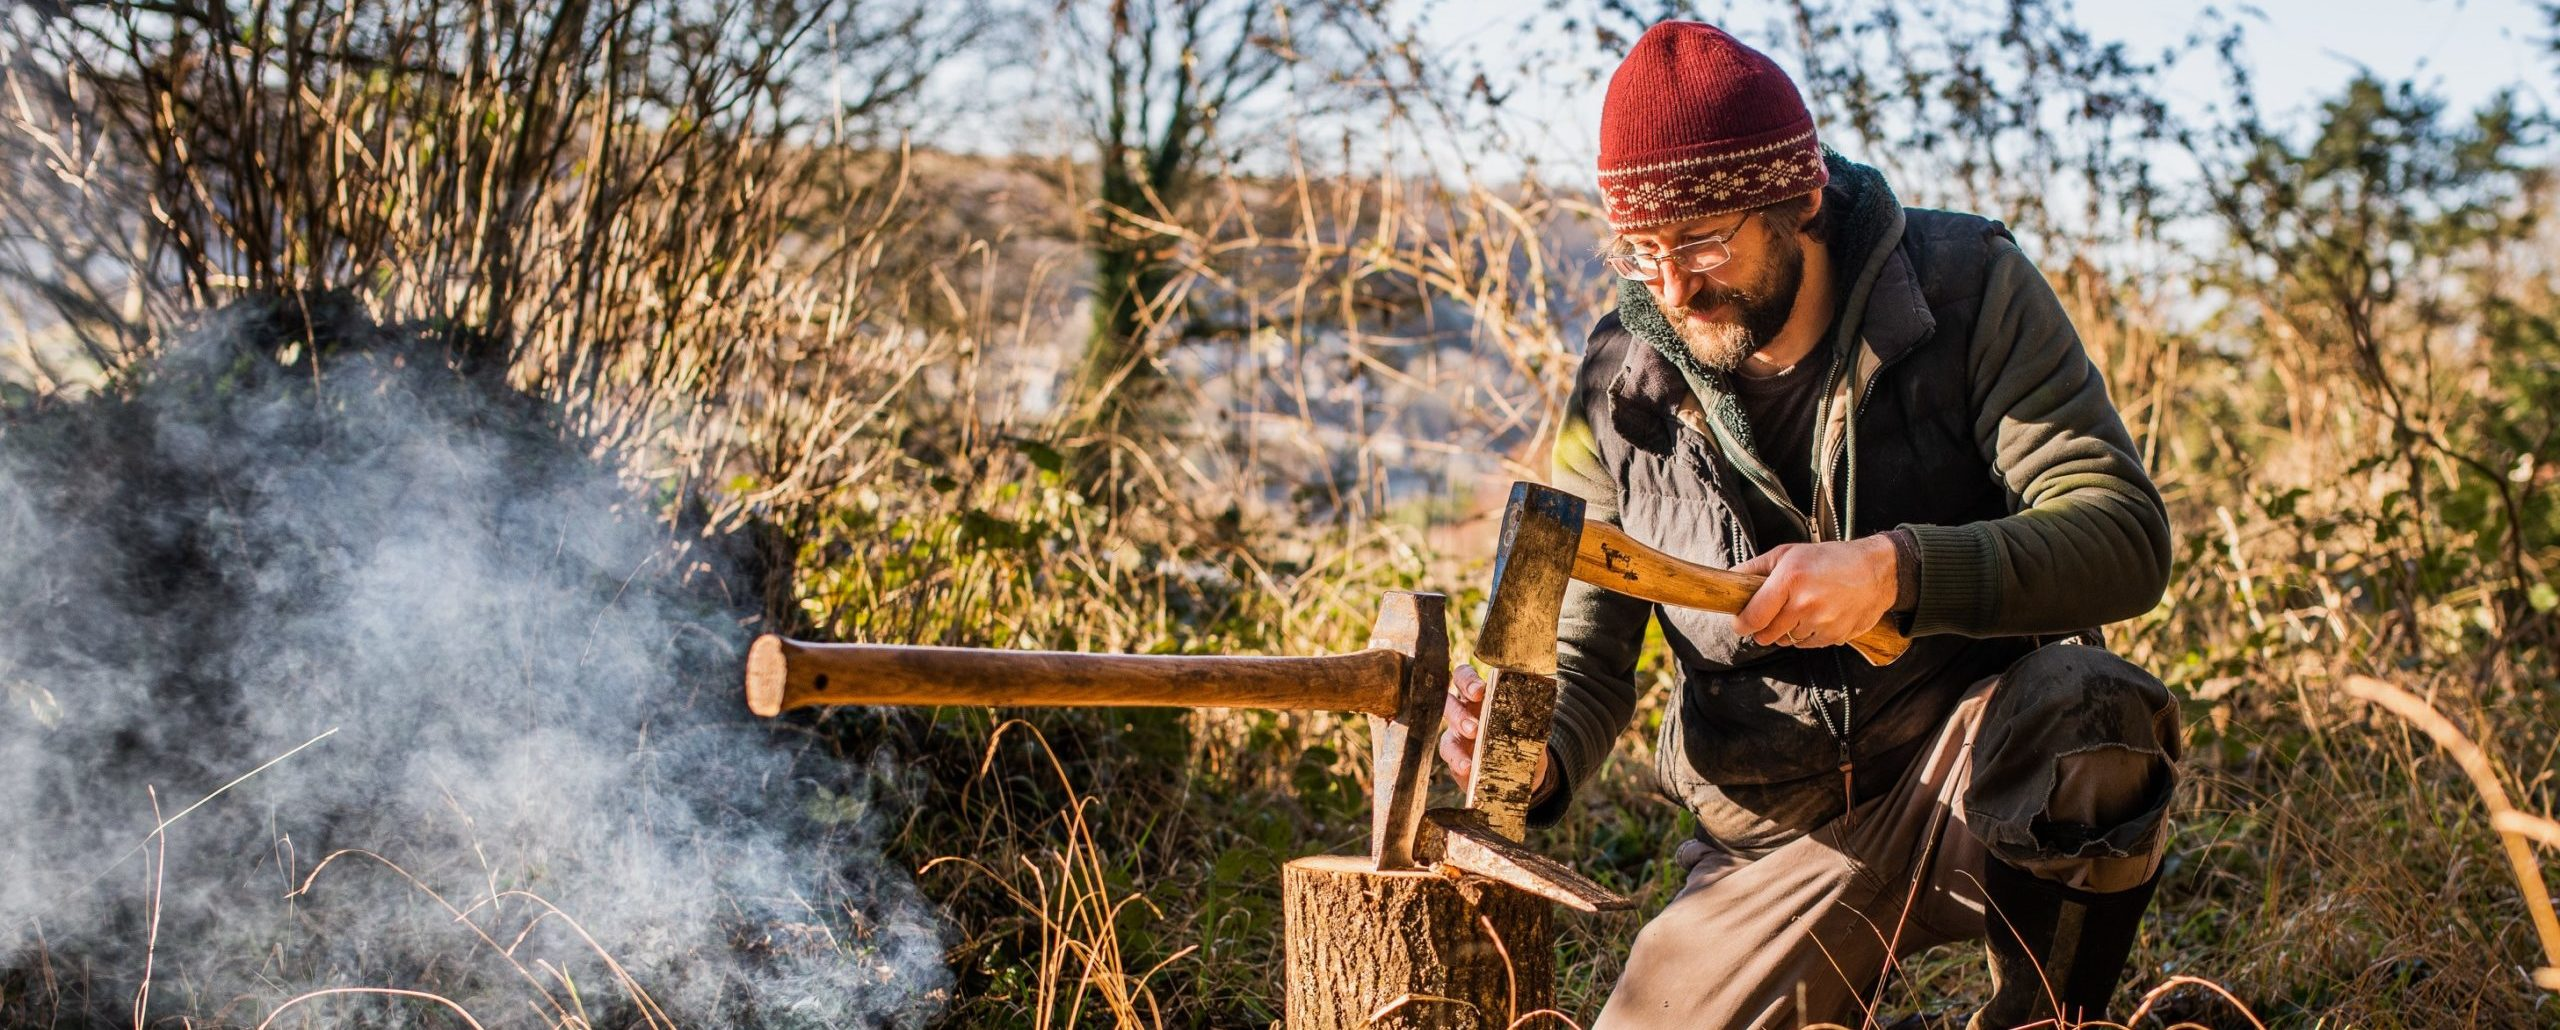 Image of man splitting wood with an axe beside a small camp fire